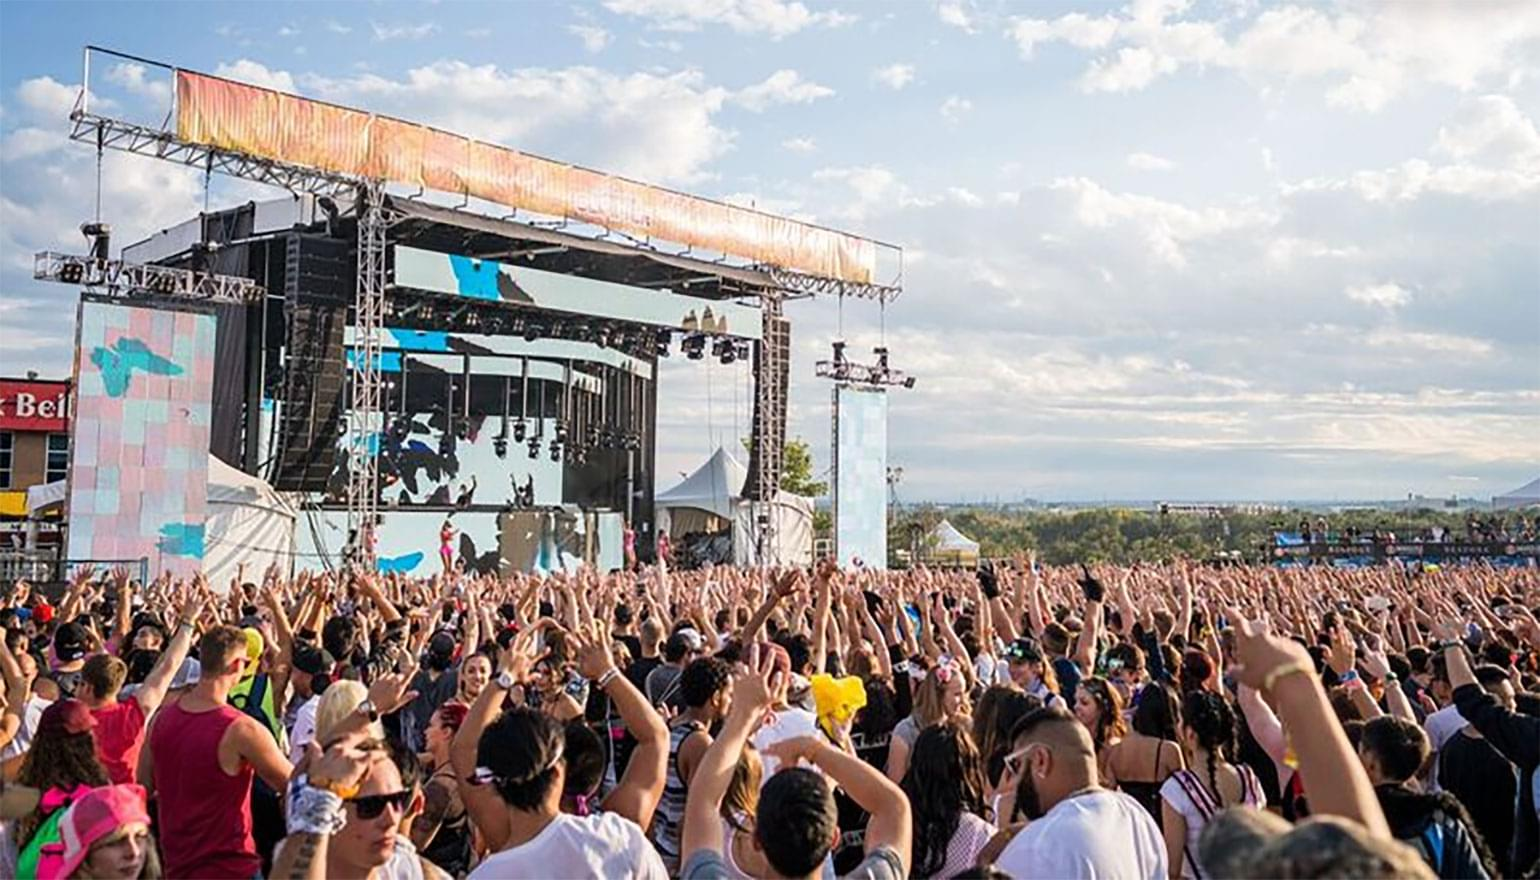 Large crowd at a festival with hands in the air.